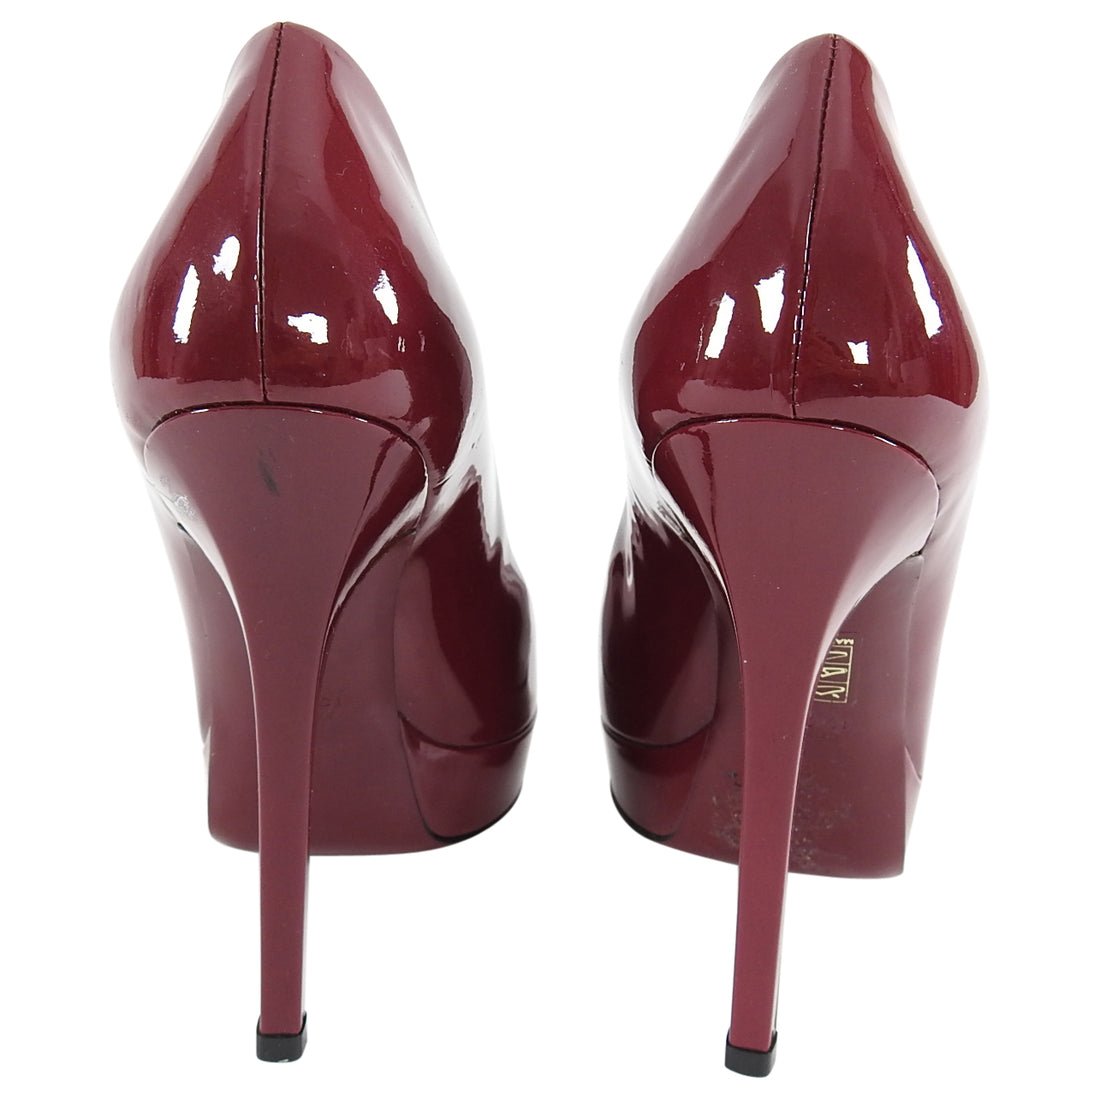 Gucci Raspberry Patent Leather 130mm Classic Pumps - 38